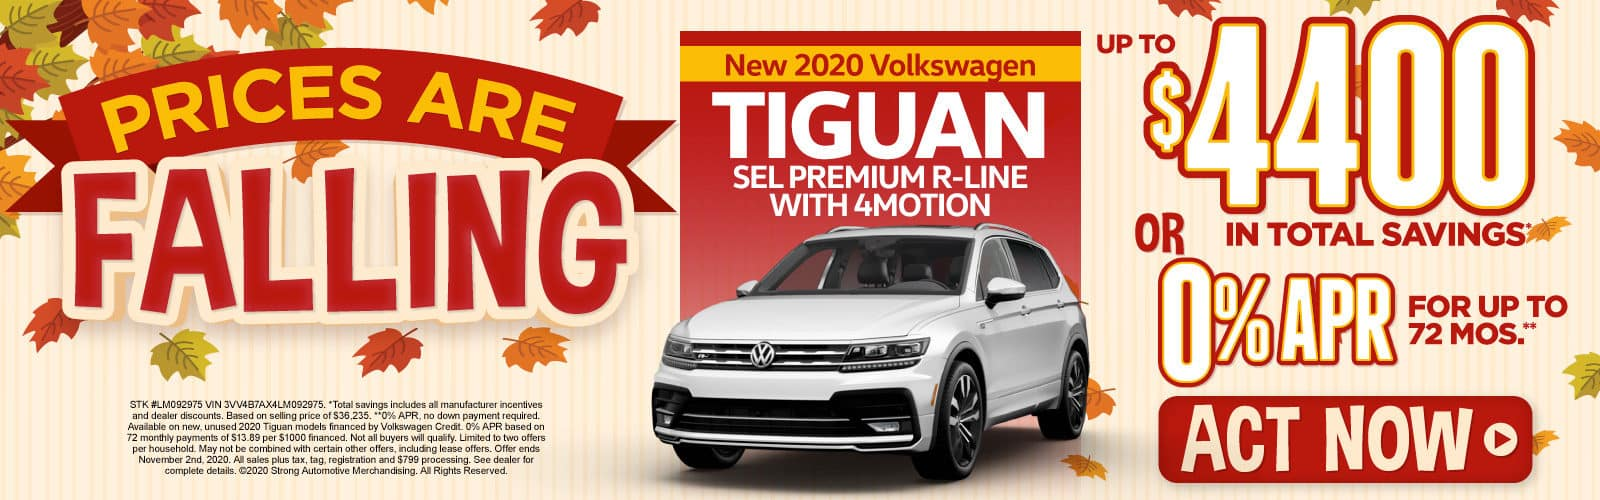 New 2020 VW Tiguan - Up to $4400 in total savings - Act Now